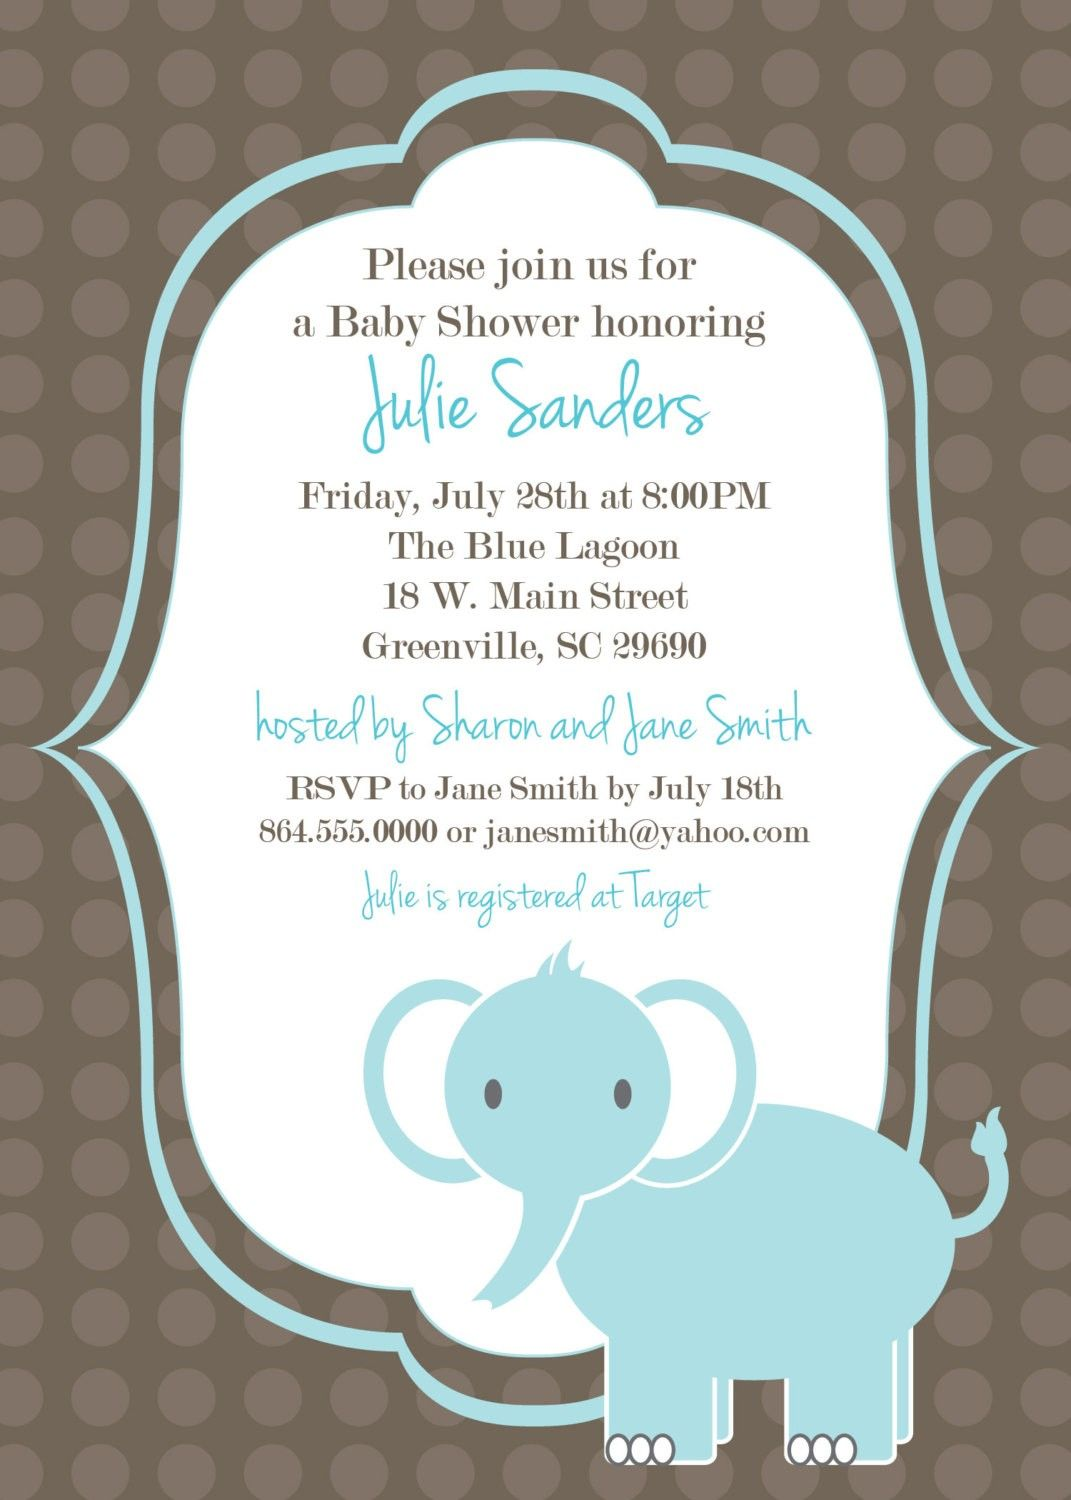 Full Size of Baby Shower:baby Shower Invitations For Boys Homemade Baby Shower Decorations Baby Shower Ideas Nursery Themes For Girls Baby Girl Themes For Baby Shower Unique Baby Shower Ideas Baby Shower Decorations For Boys Baby Girl Shower Tableware